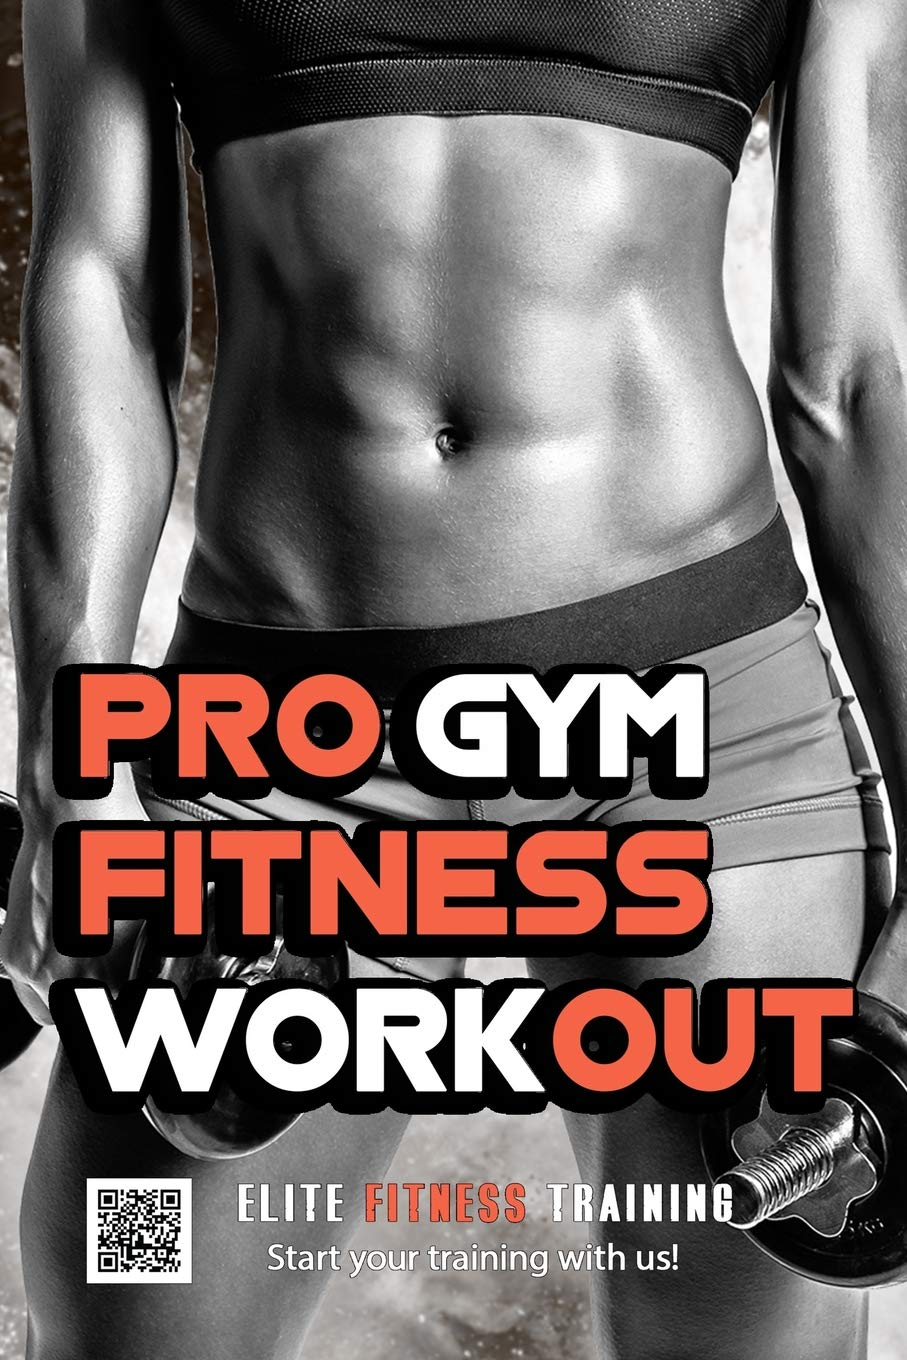 Pro Gym Fitness Workout: Journal Notebook For Cross Training